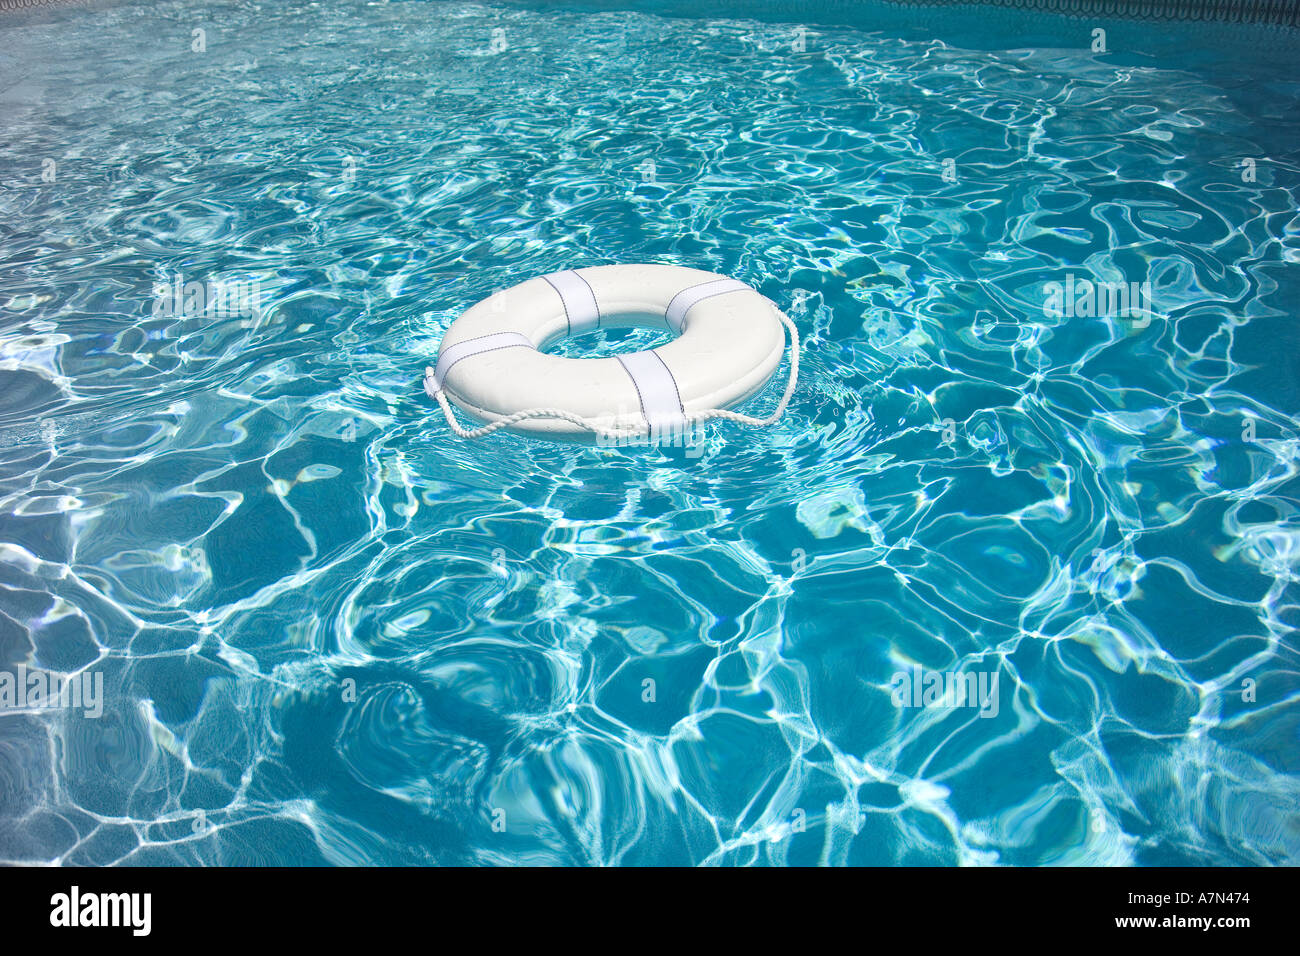 Life Preserver in pool life jacket - Stock Image